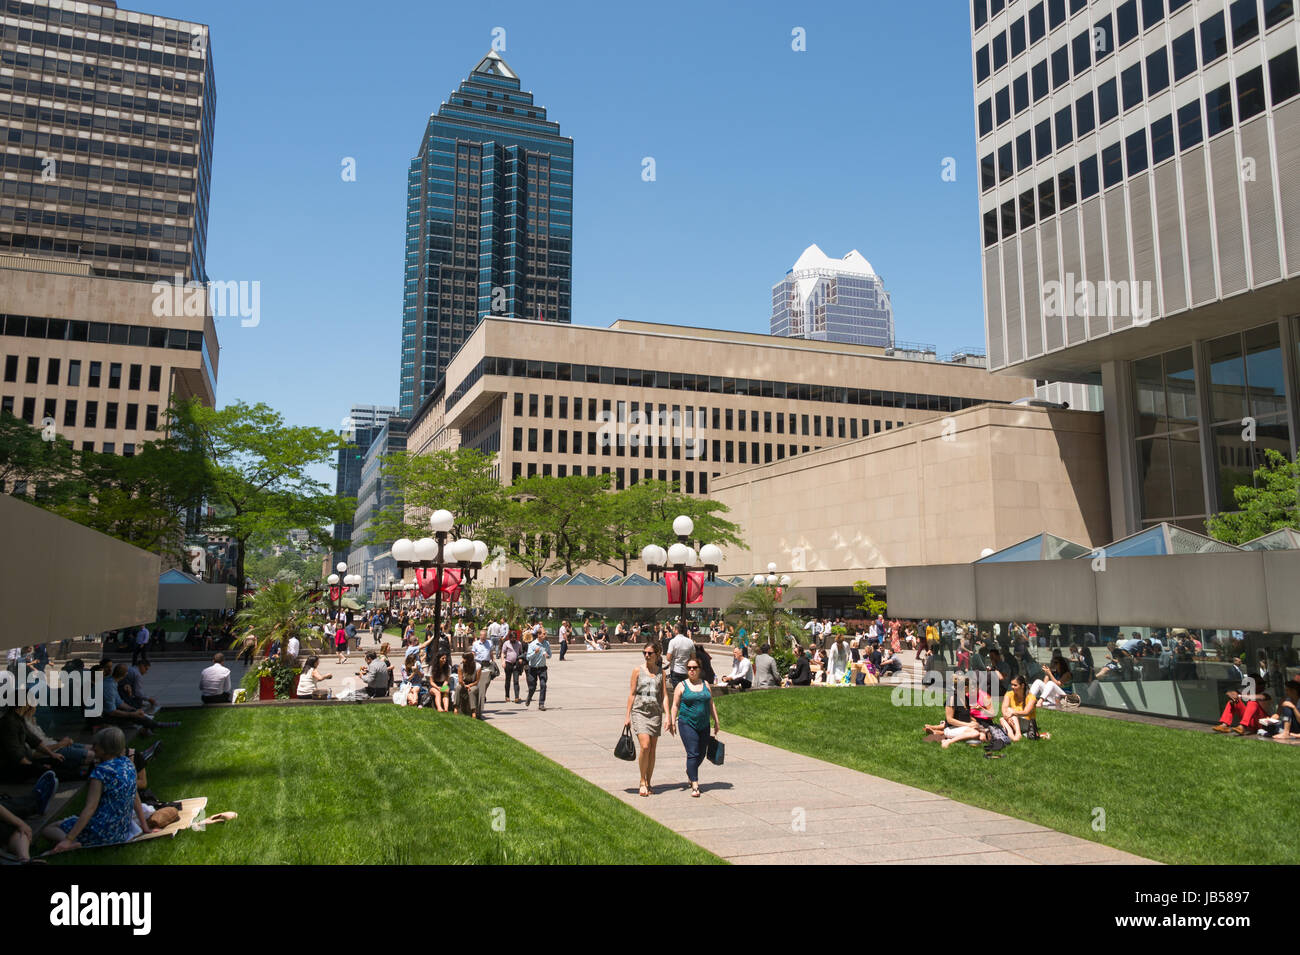 Montreal, CANADA - 8 June 2017: Place Ville Marie esplanade and 1501 McGill College skyscraper Stock Photo